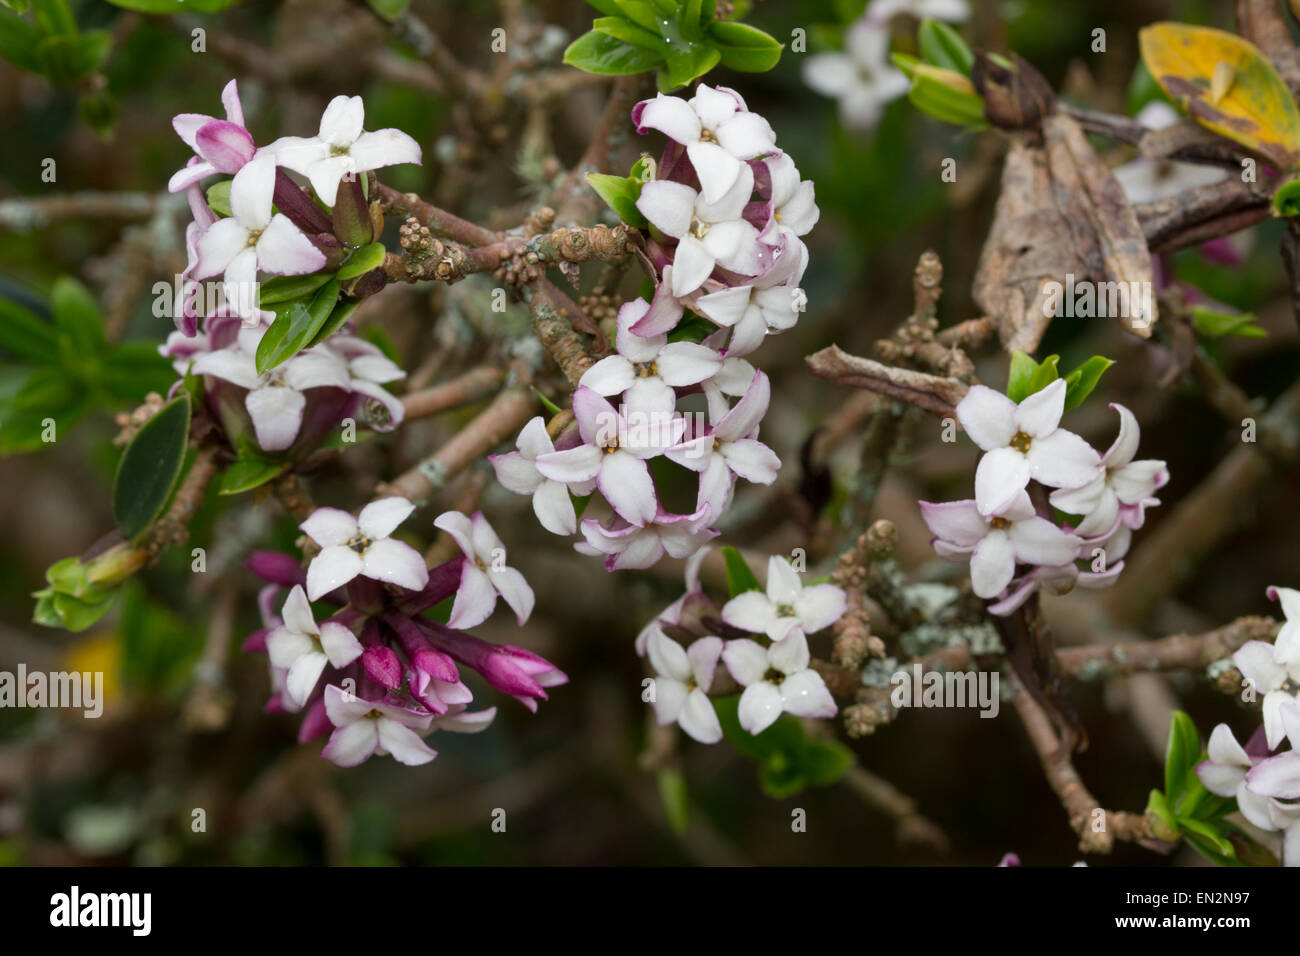 Scented spring flowers of the small evergreen shrub daphne scented spring flowers of the small evergreen shrub daphne tangutica mightylinksfo